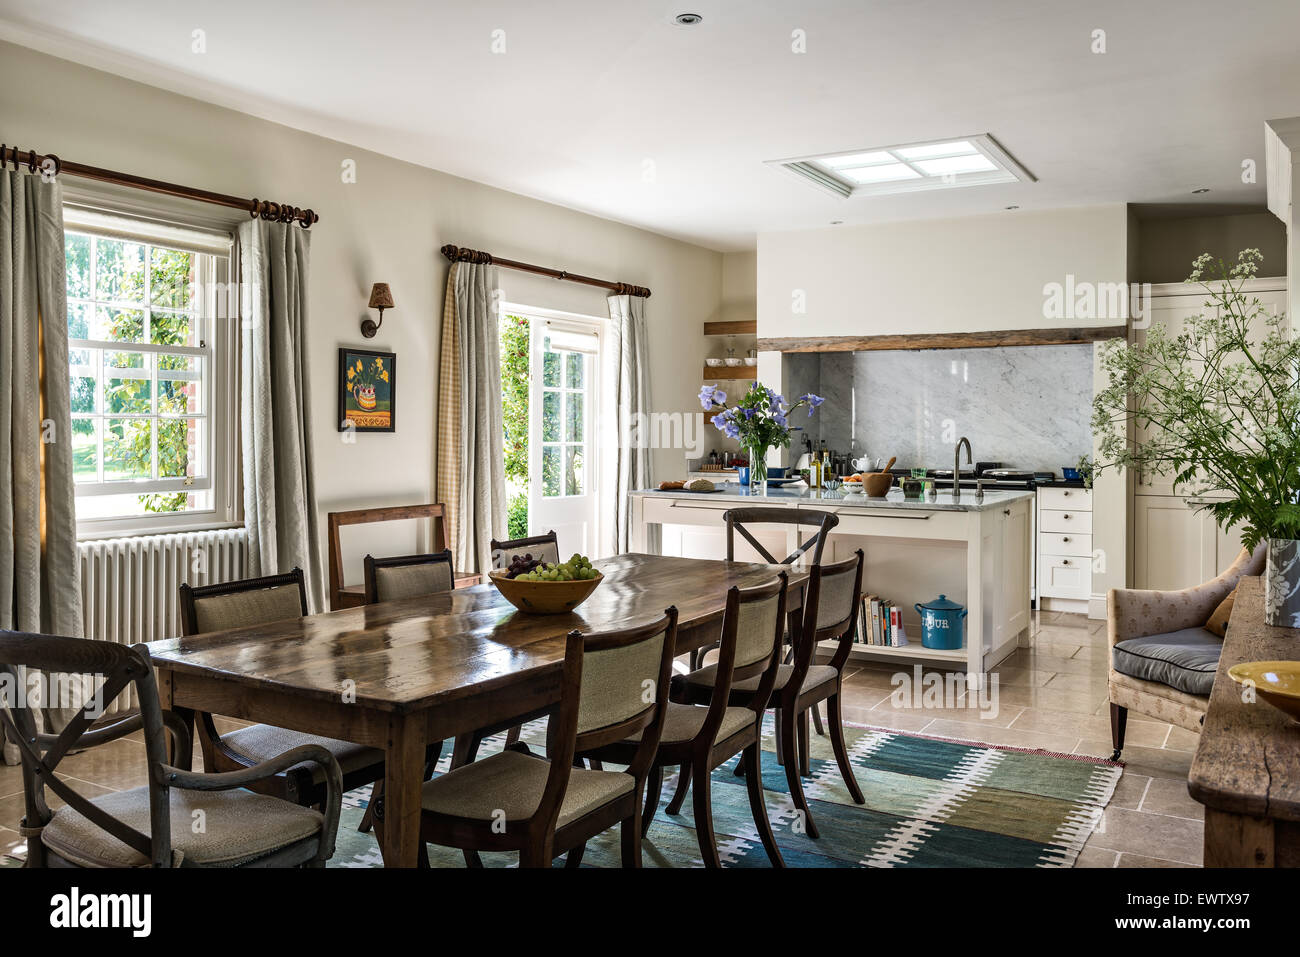 antique kitchen table cabinet design online dining with chairs in open plan room limestone flooring